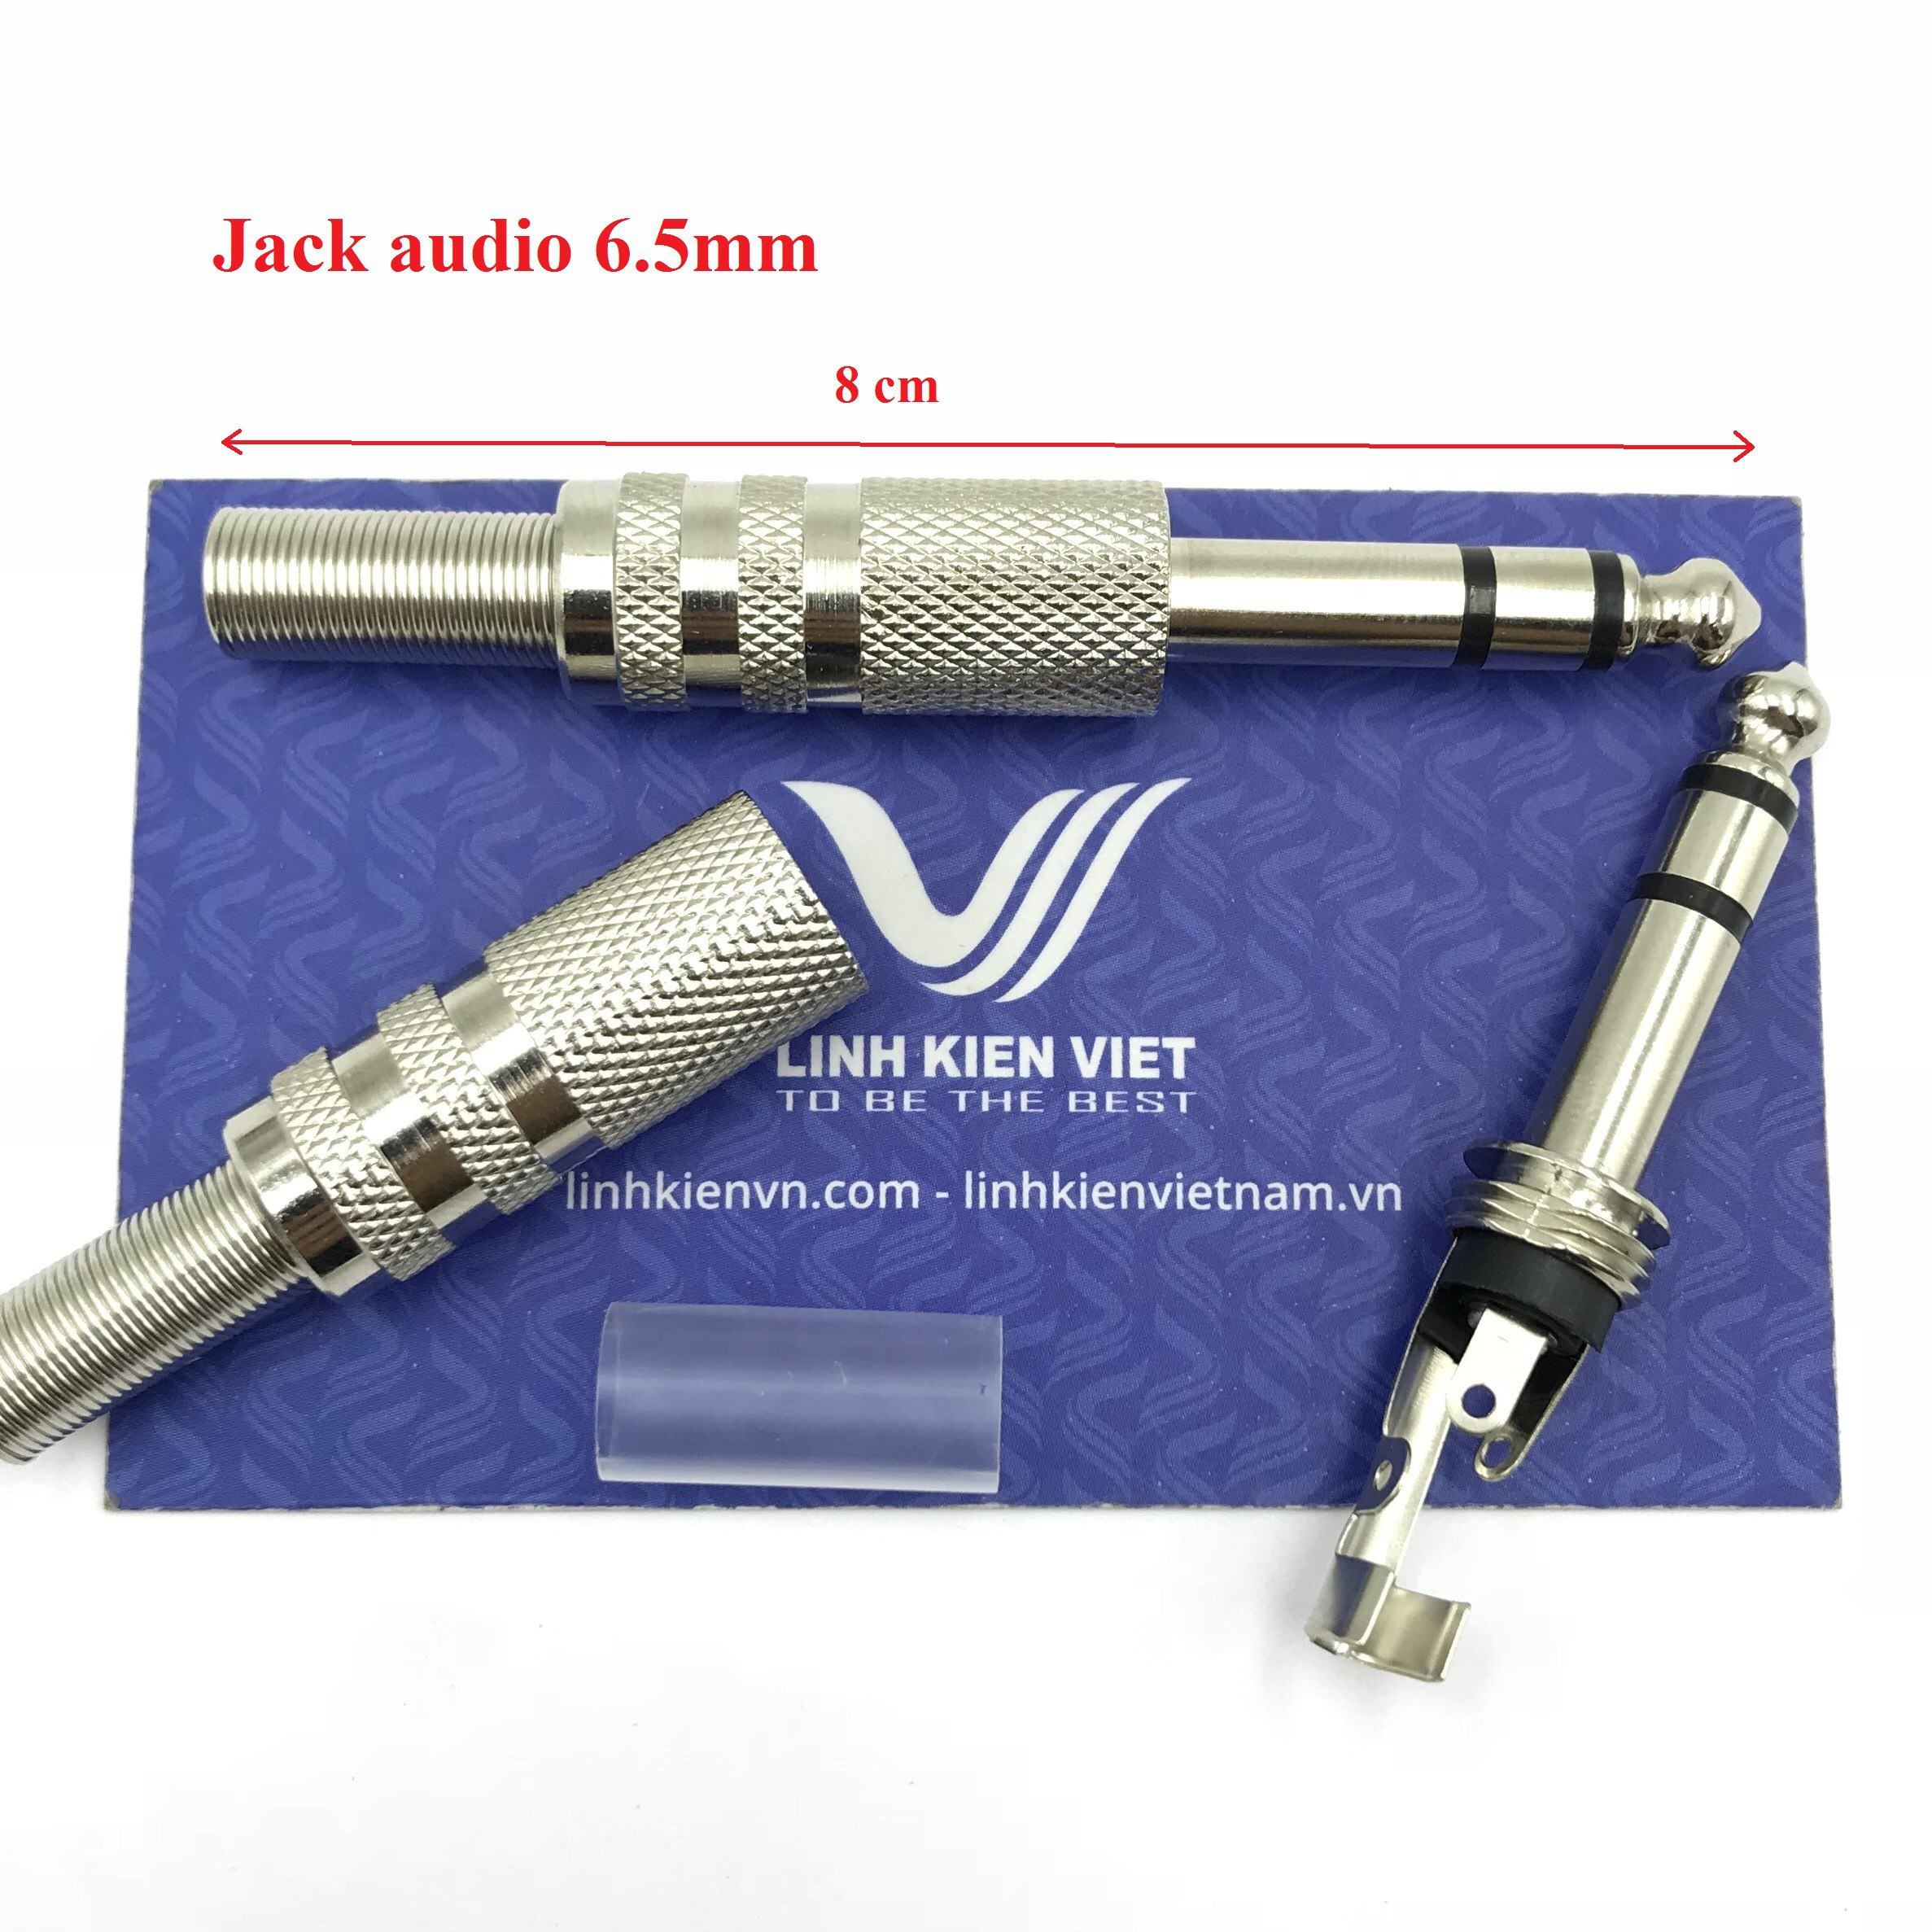 Jack Audio 6.5mm 3 chân - X3H11